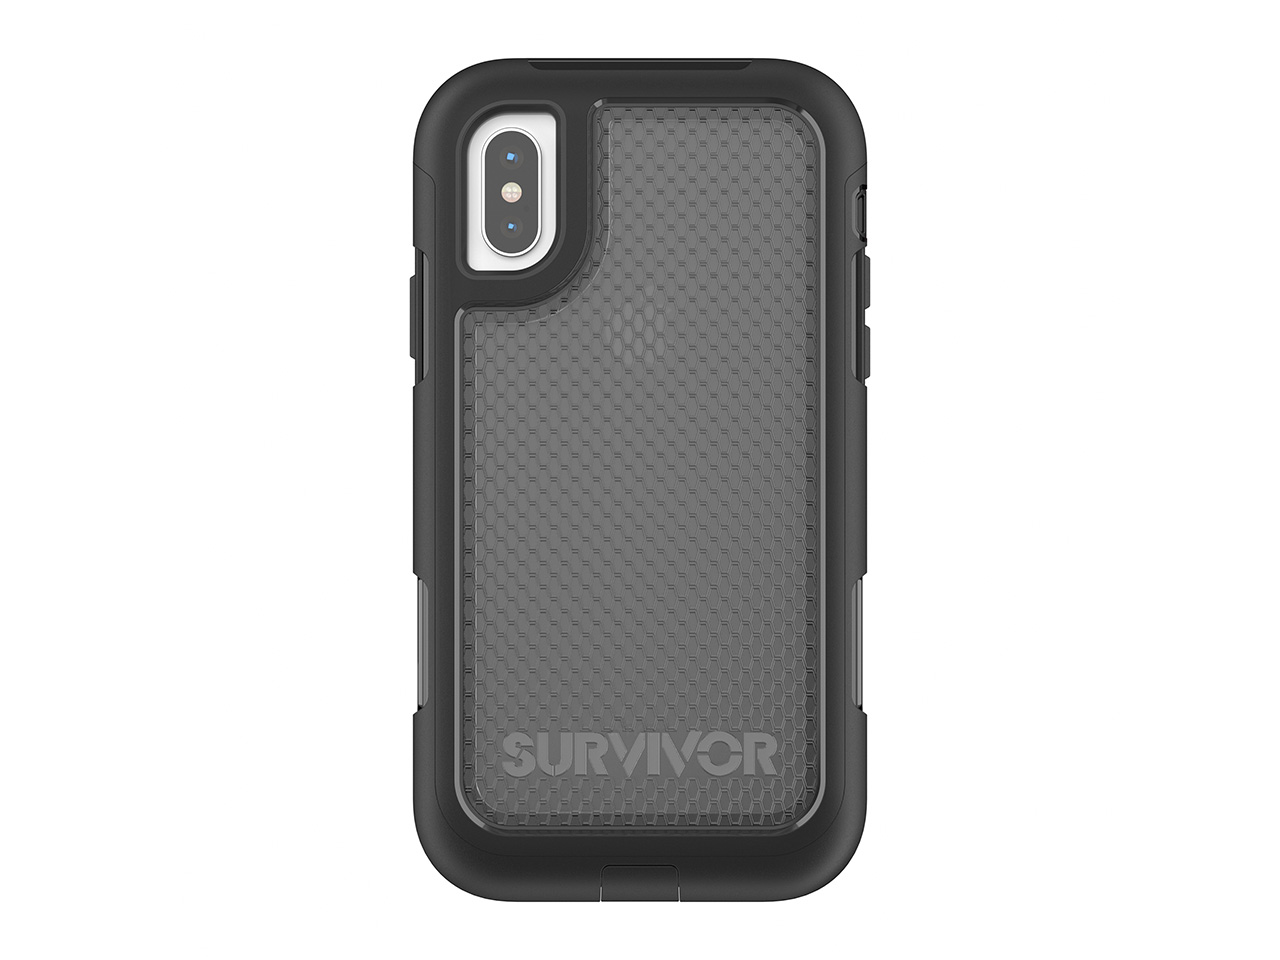 griffin survivor galaxy s5 casesgriffin survivor extreme for iphone x, all weather case with maximum drop protection for